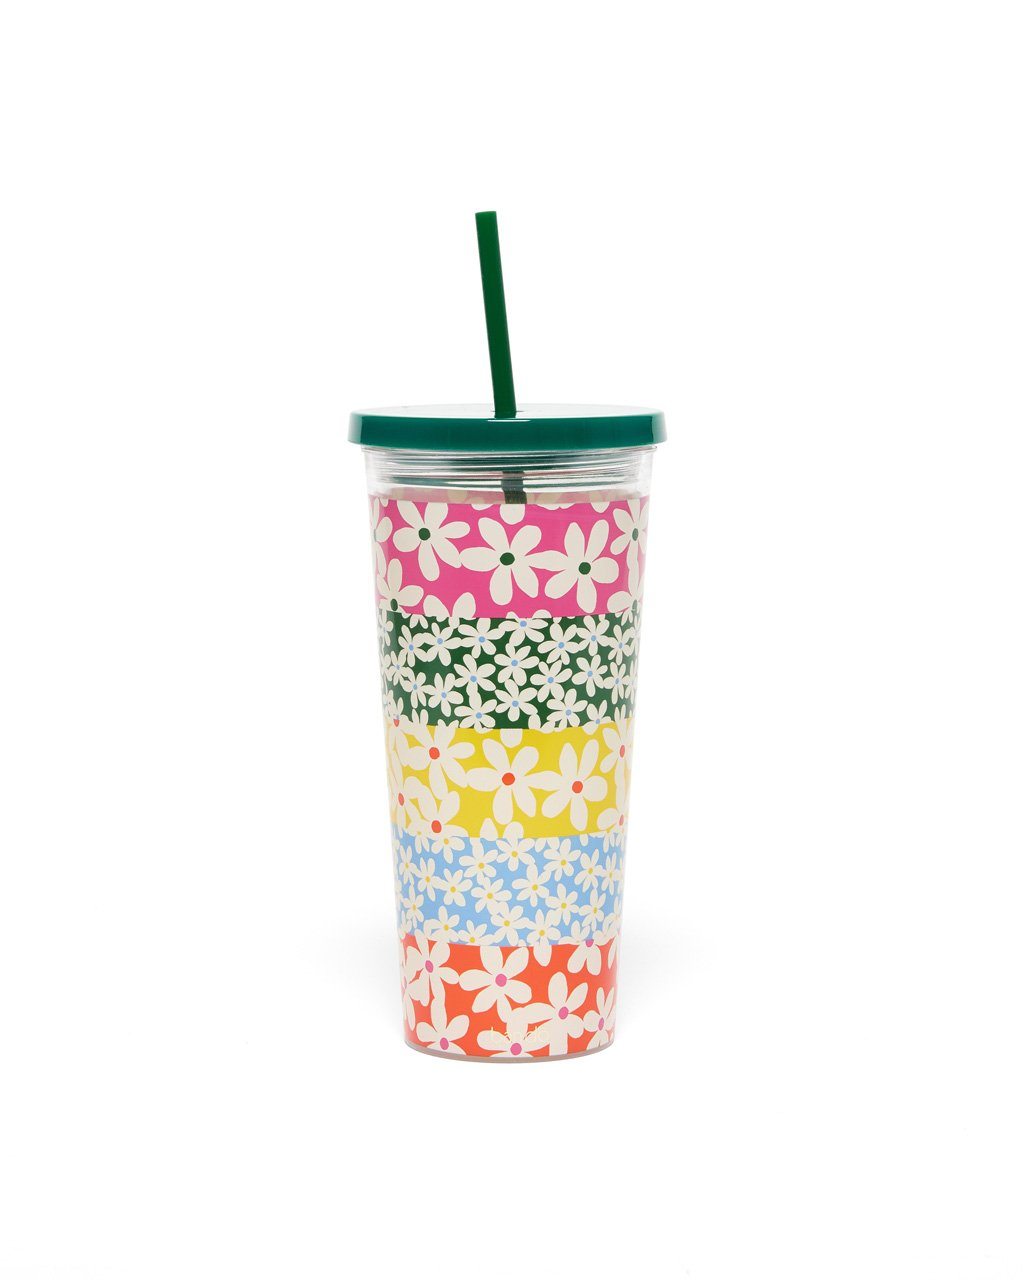 multi colored daisy acrylic tumbler with a solid green lid and straw